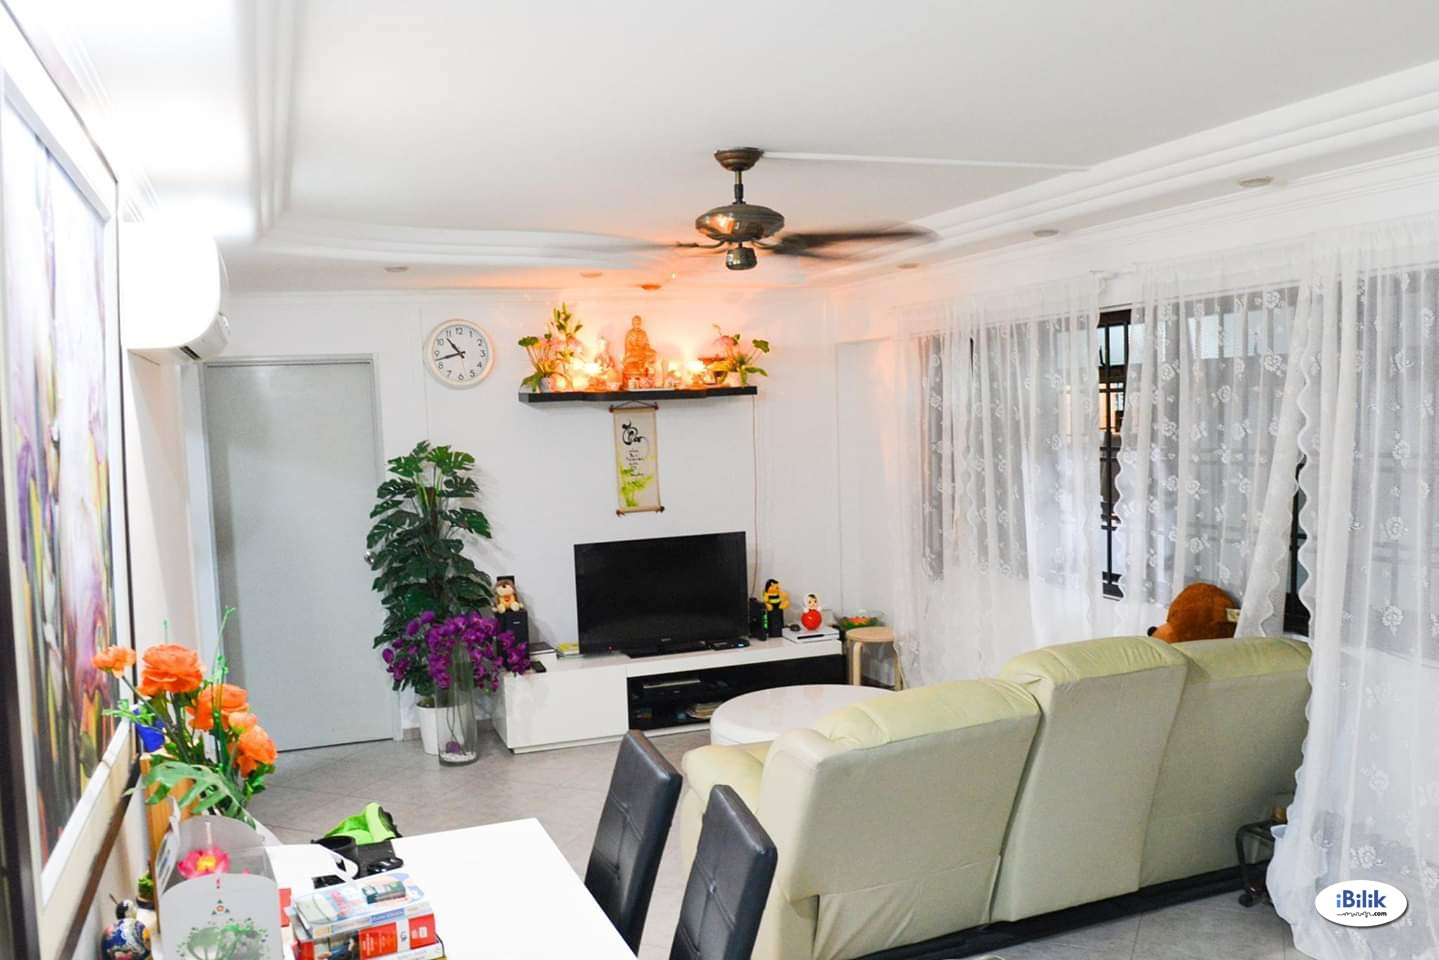 Common room at 623 jurong west street 61 for rent! Aircon wifi!